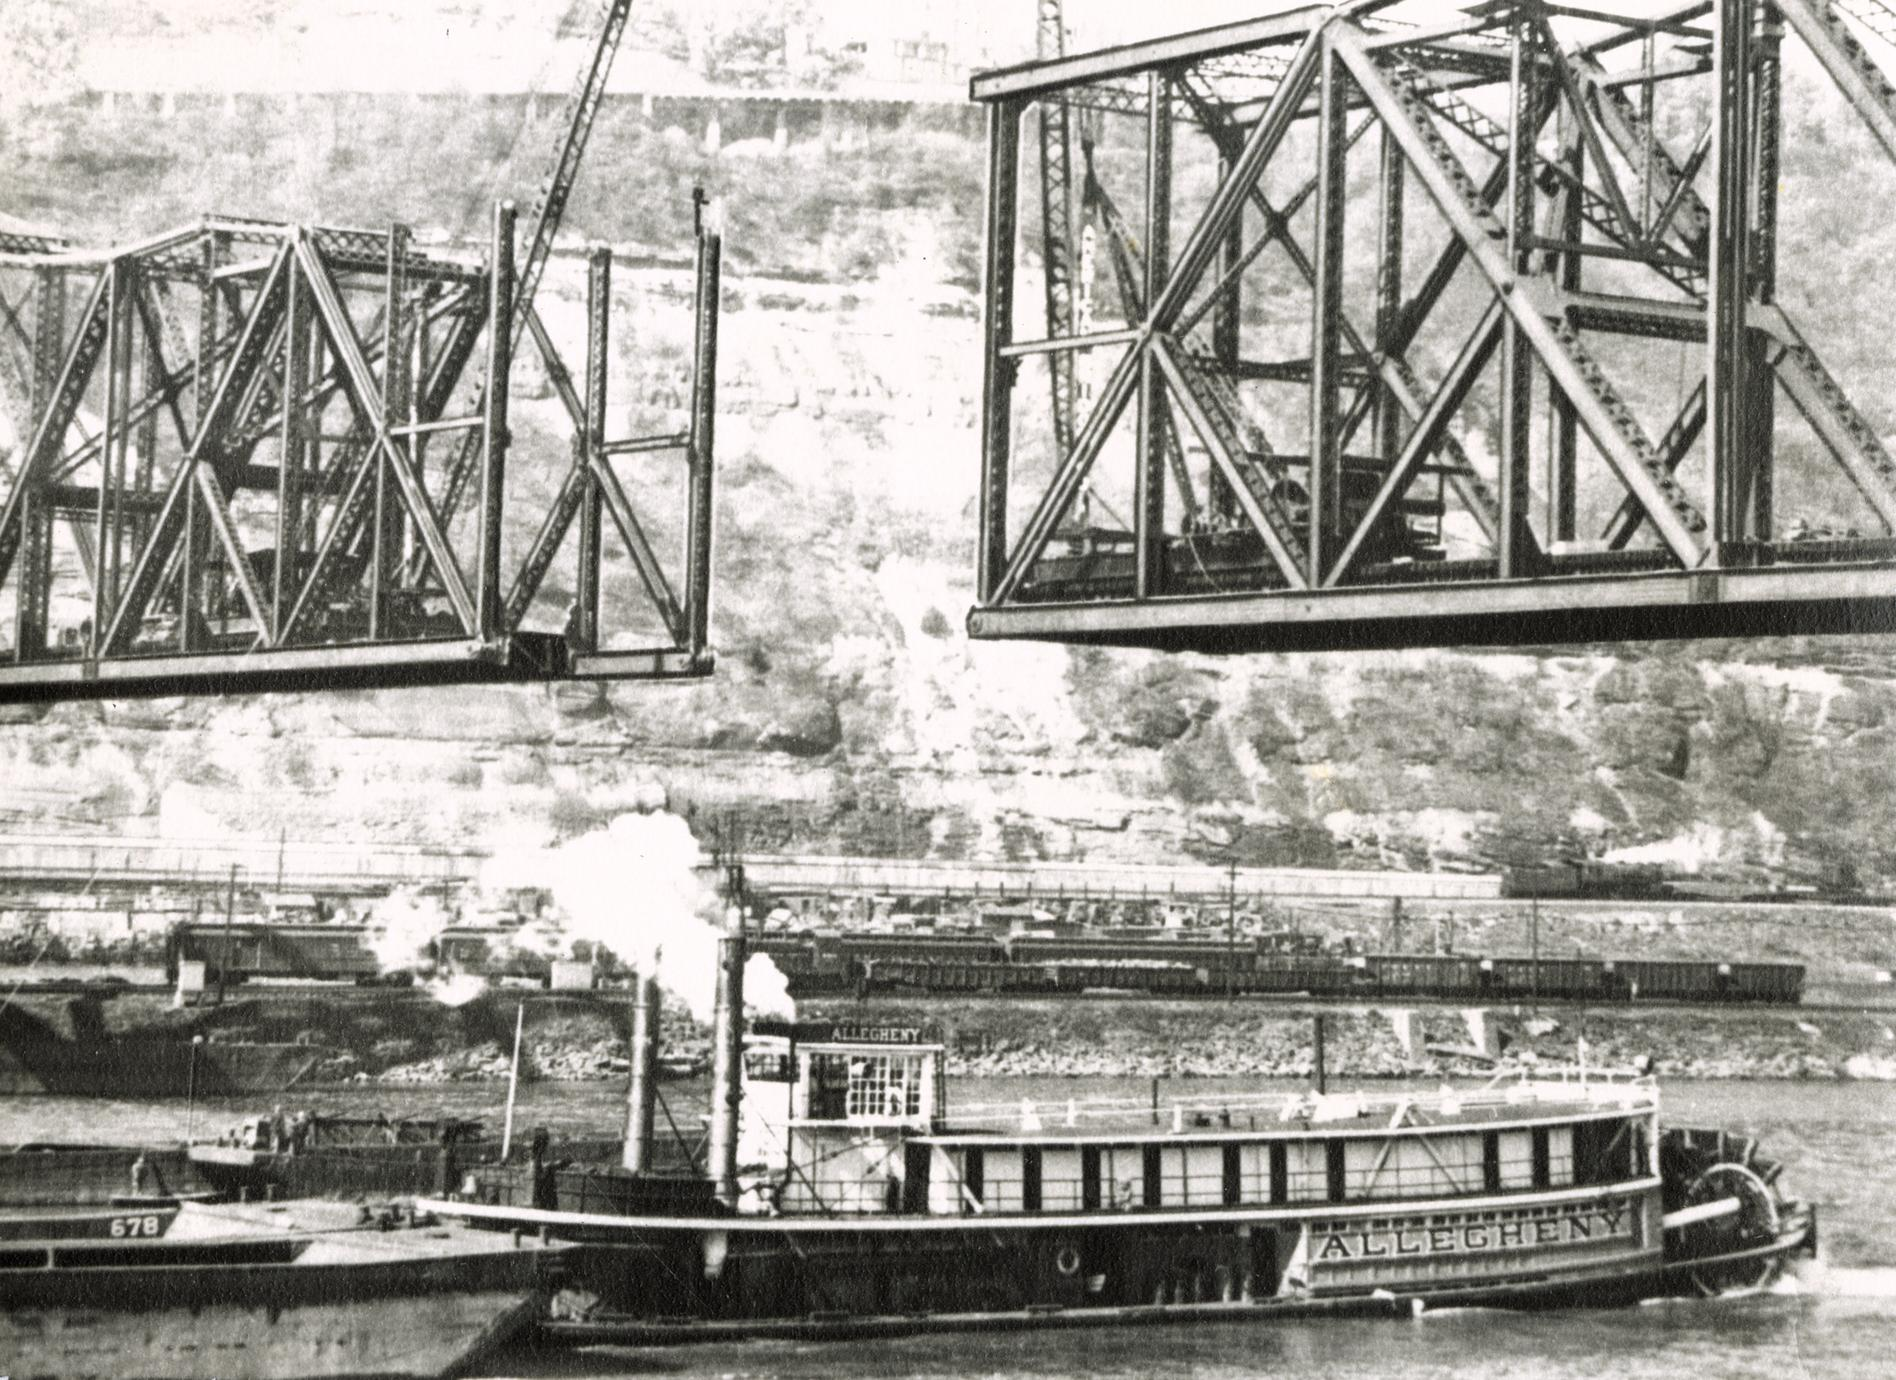 Allegheny (Towboat, 1927-1945)